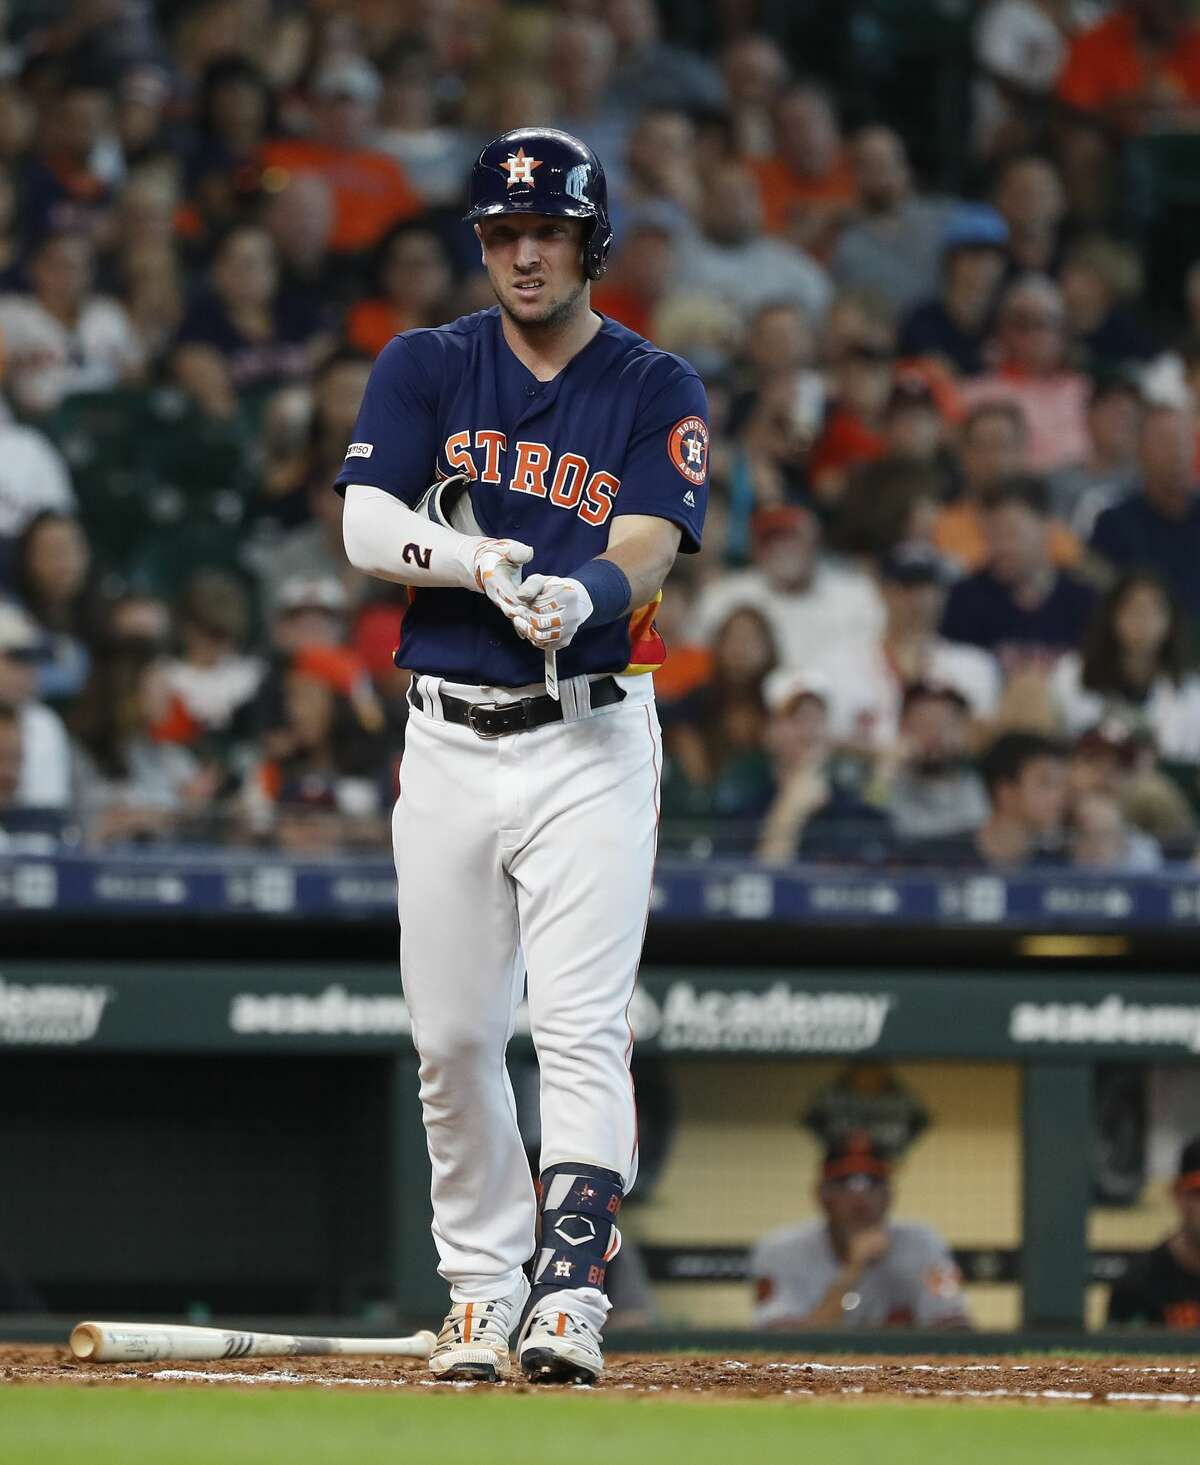 Houston Astros third baseman Alex Bregman (2) reacts after being hit by a pitch during the eighth inning of an MLB game at Minute Maid Park, Sunday, June 9, 2019, in Houston.